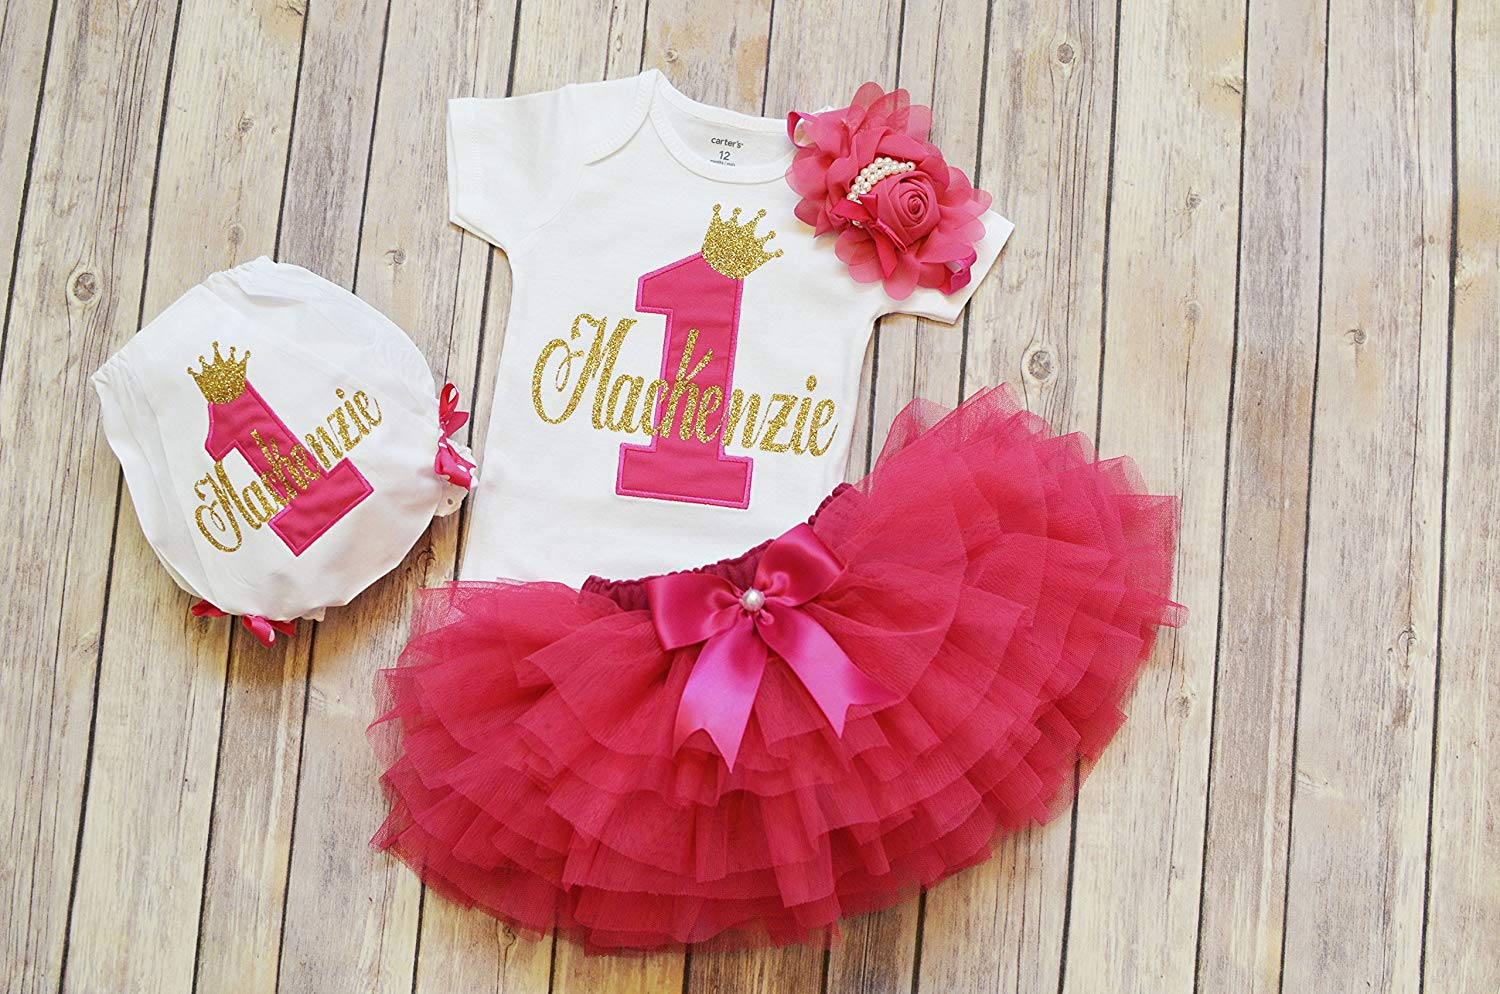 76243de20 Get Quotations · Personalized First Birthday Outfit girl,Hot pink gold 1st  birthday tutu,Princess birthday outfit